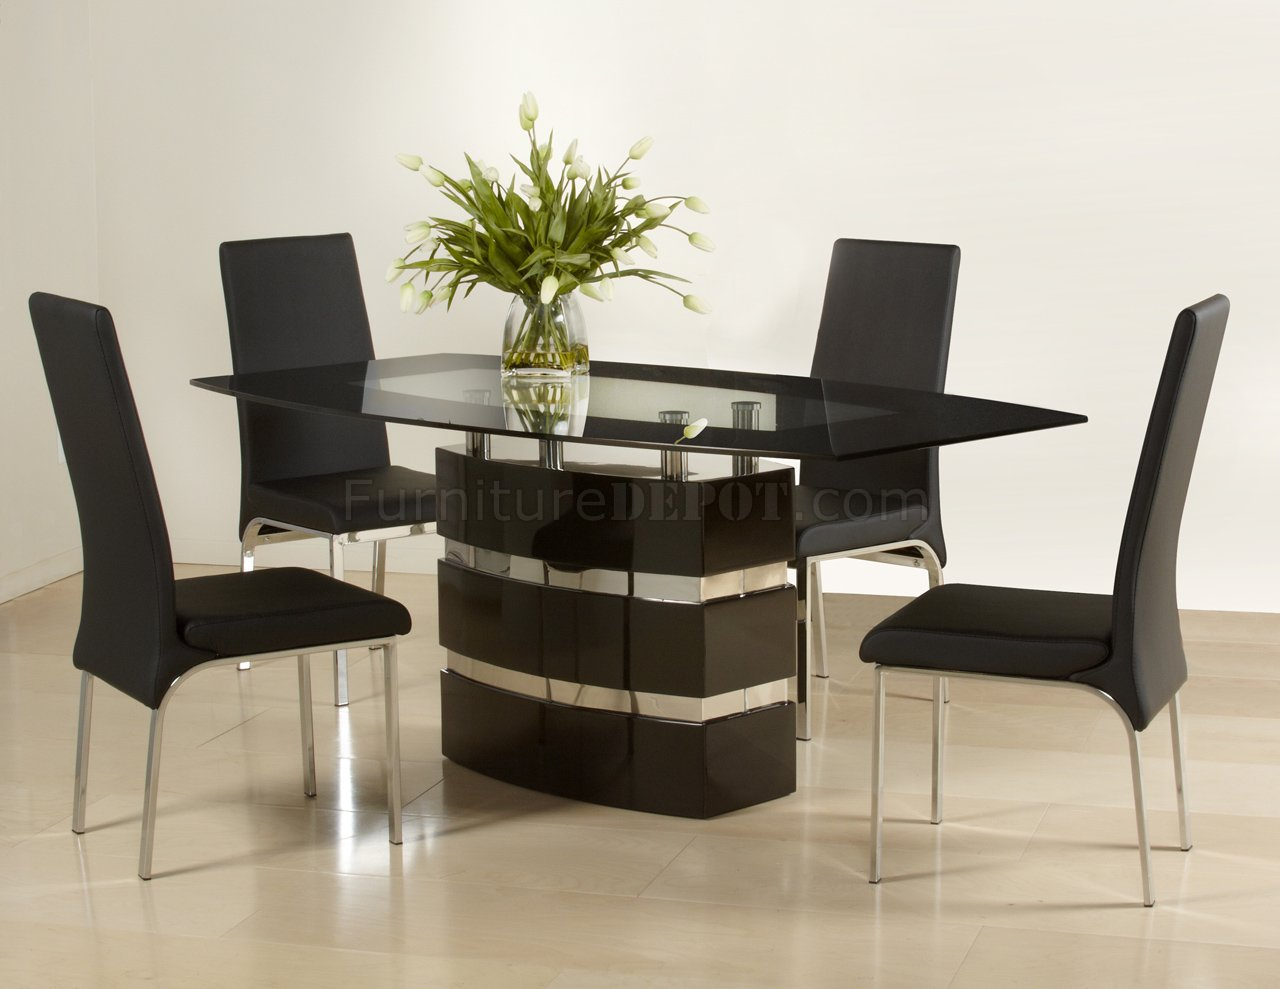 Black High Gloss Finish Modern Dining Table w Optional Chairs